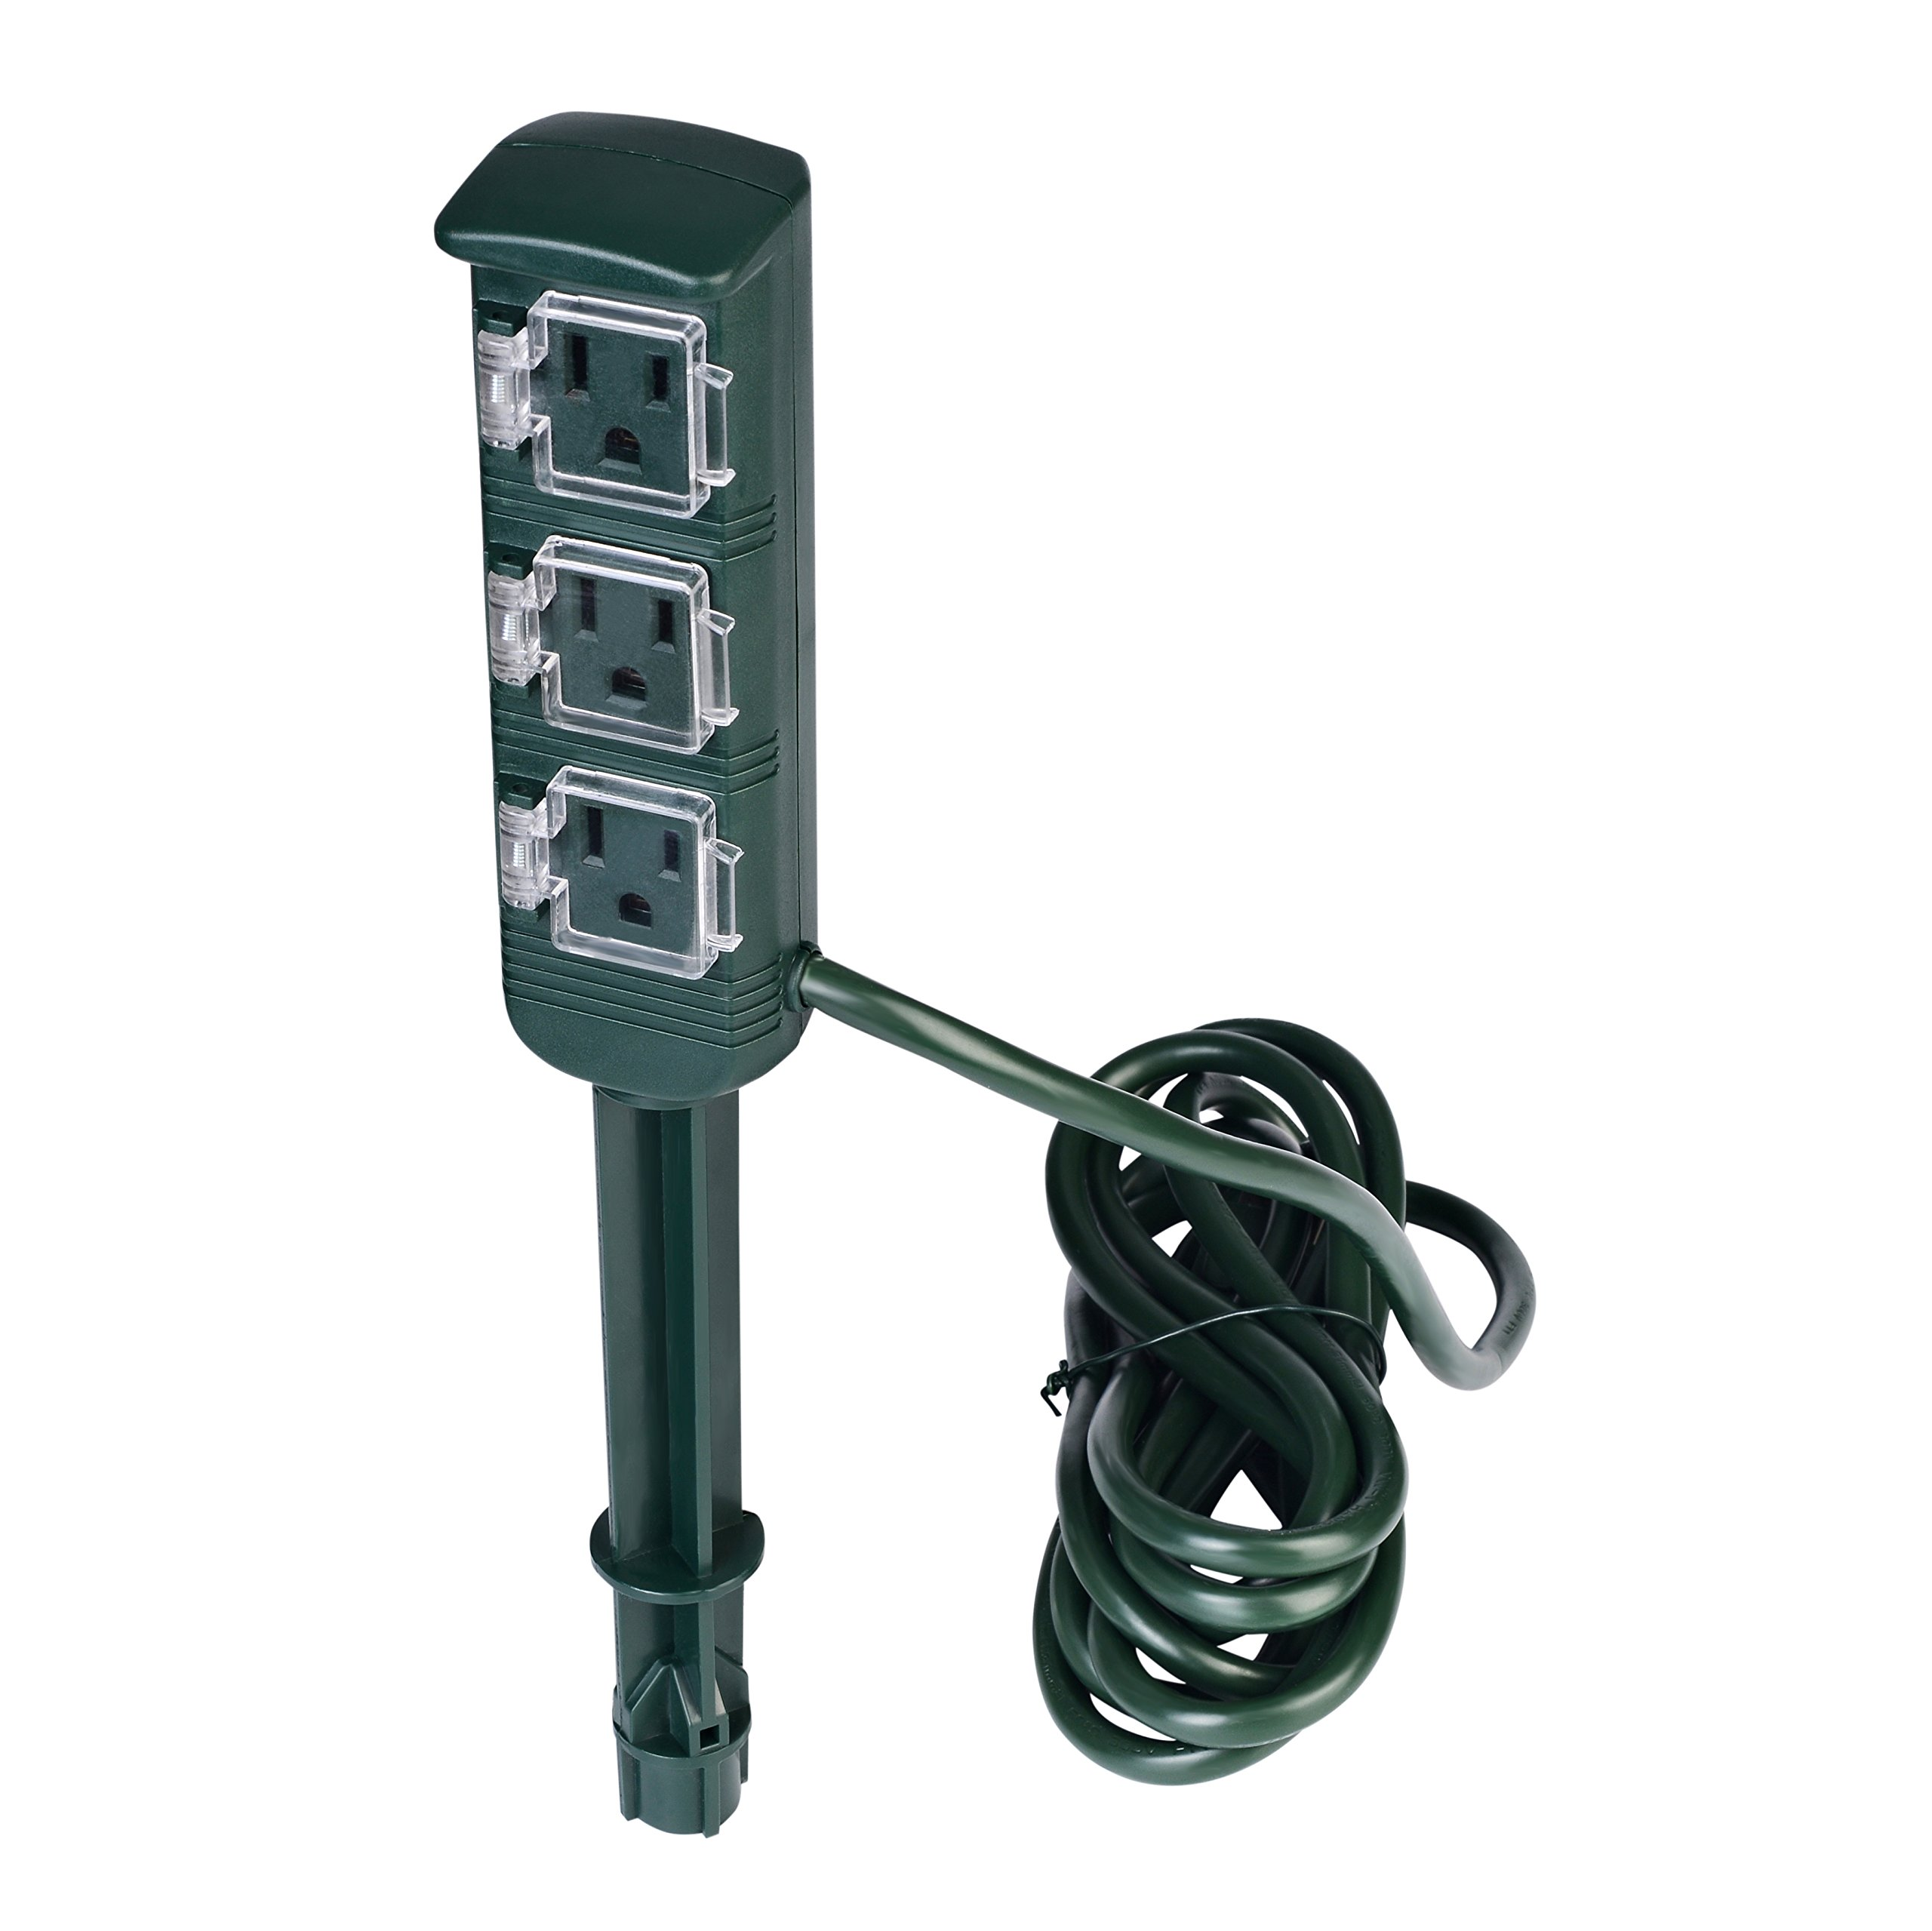 Kungfuking Outdoor Outlet Stake for Yard Outdoor Electrical Equipment Christmas Lights